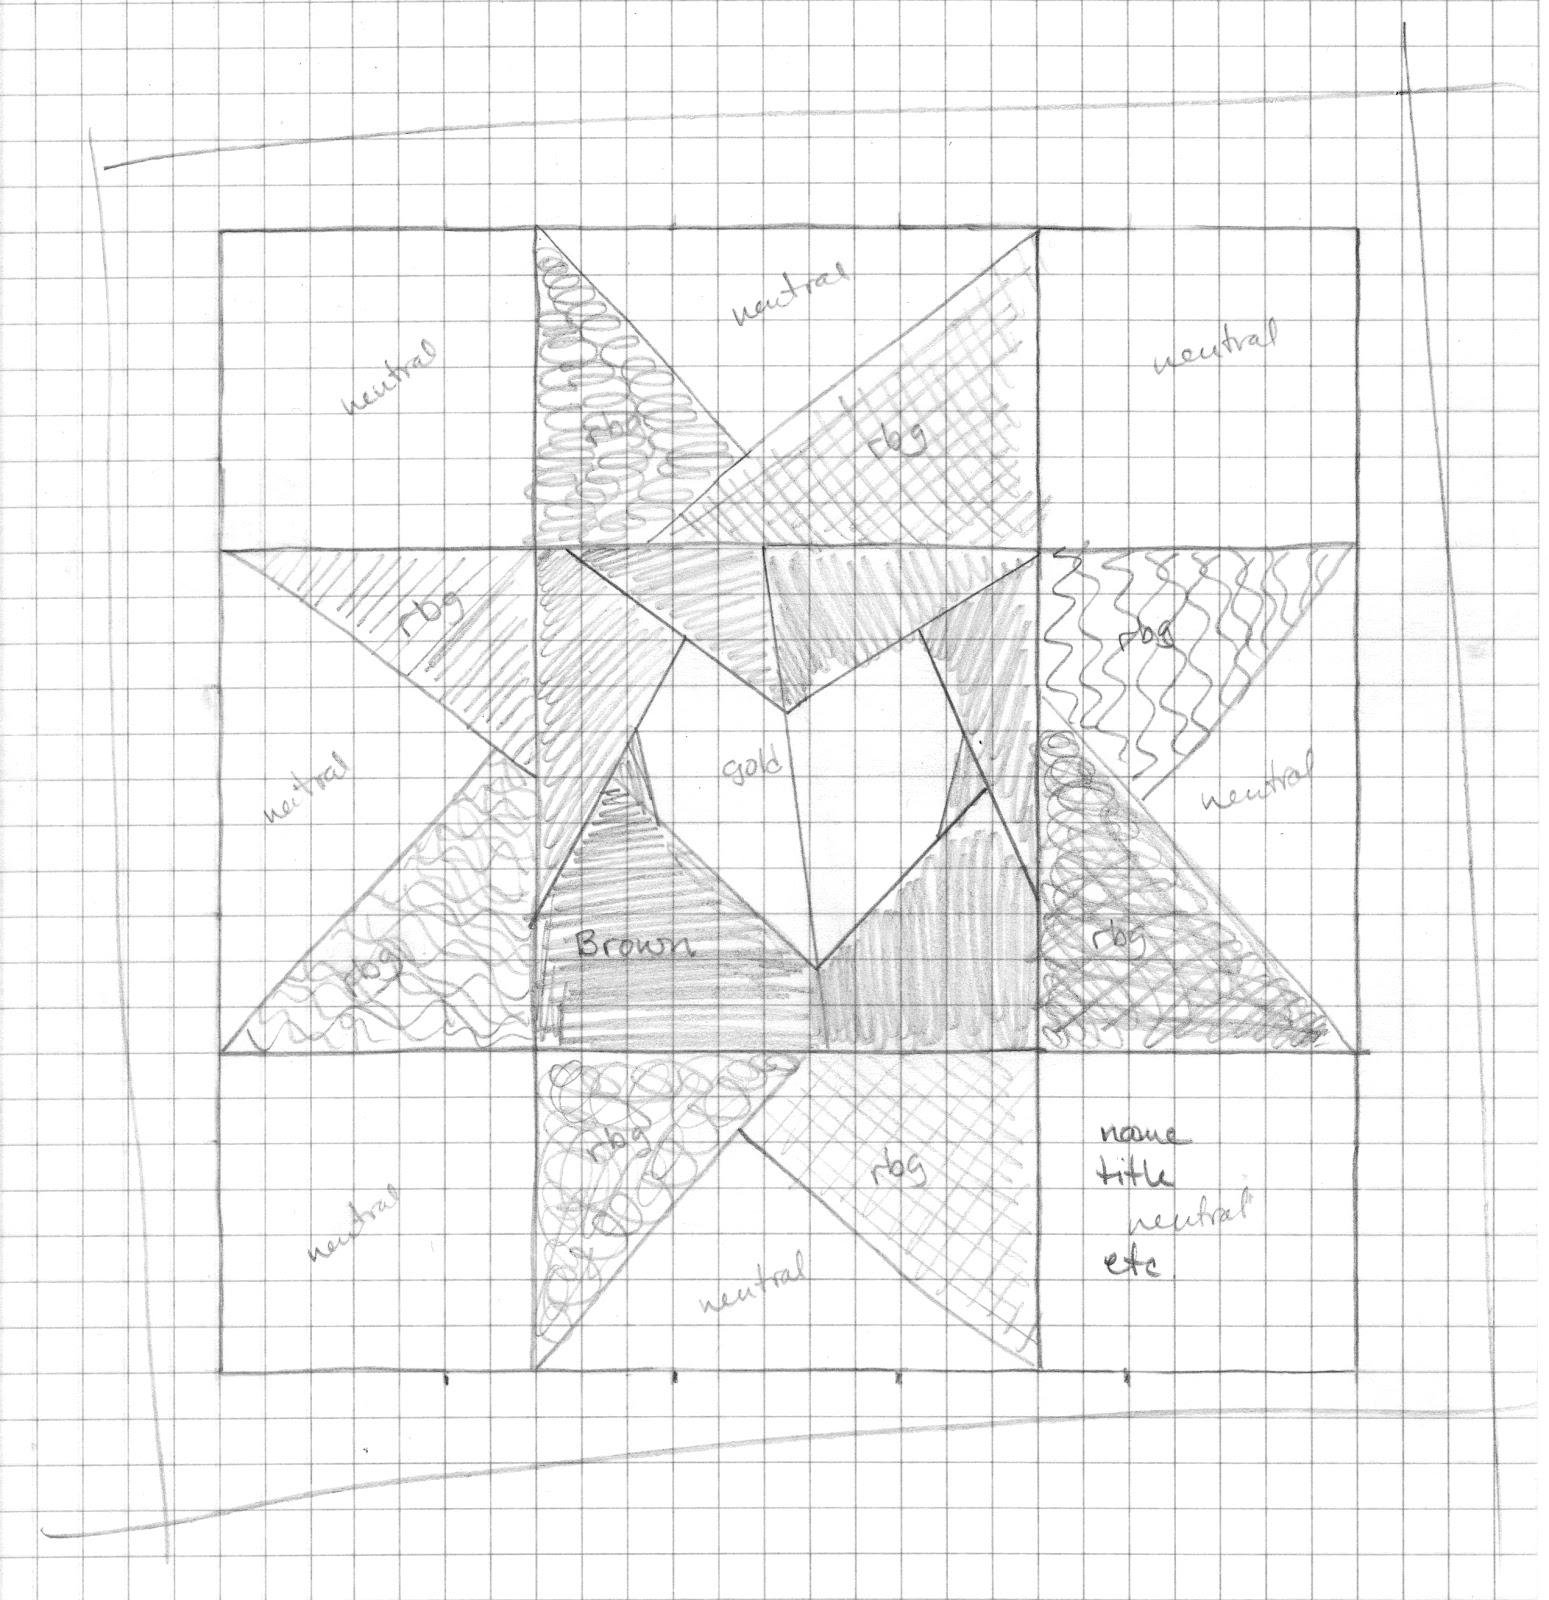 cut u0026 39 n it up    and sewing it back together   my monday design graph paper